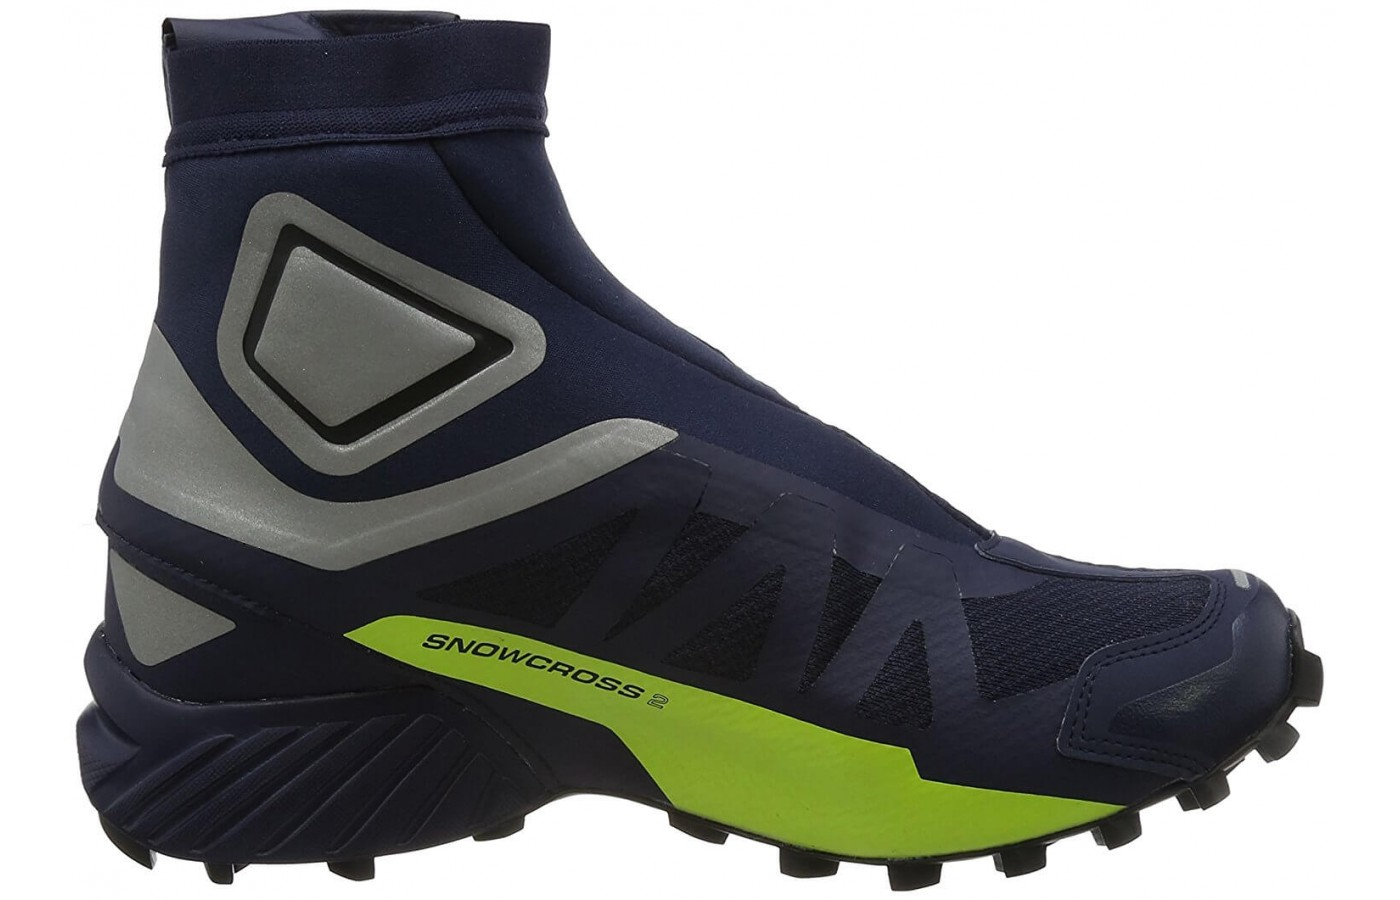 the salomon snowcross 2 has good protection in winter